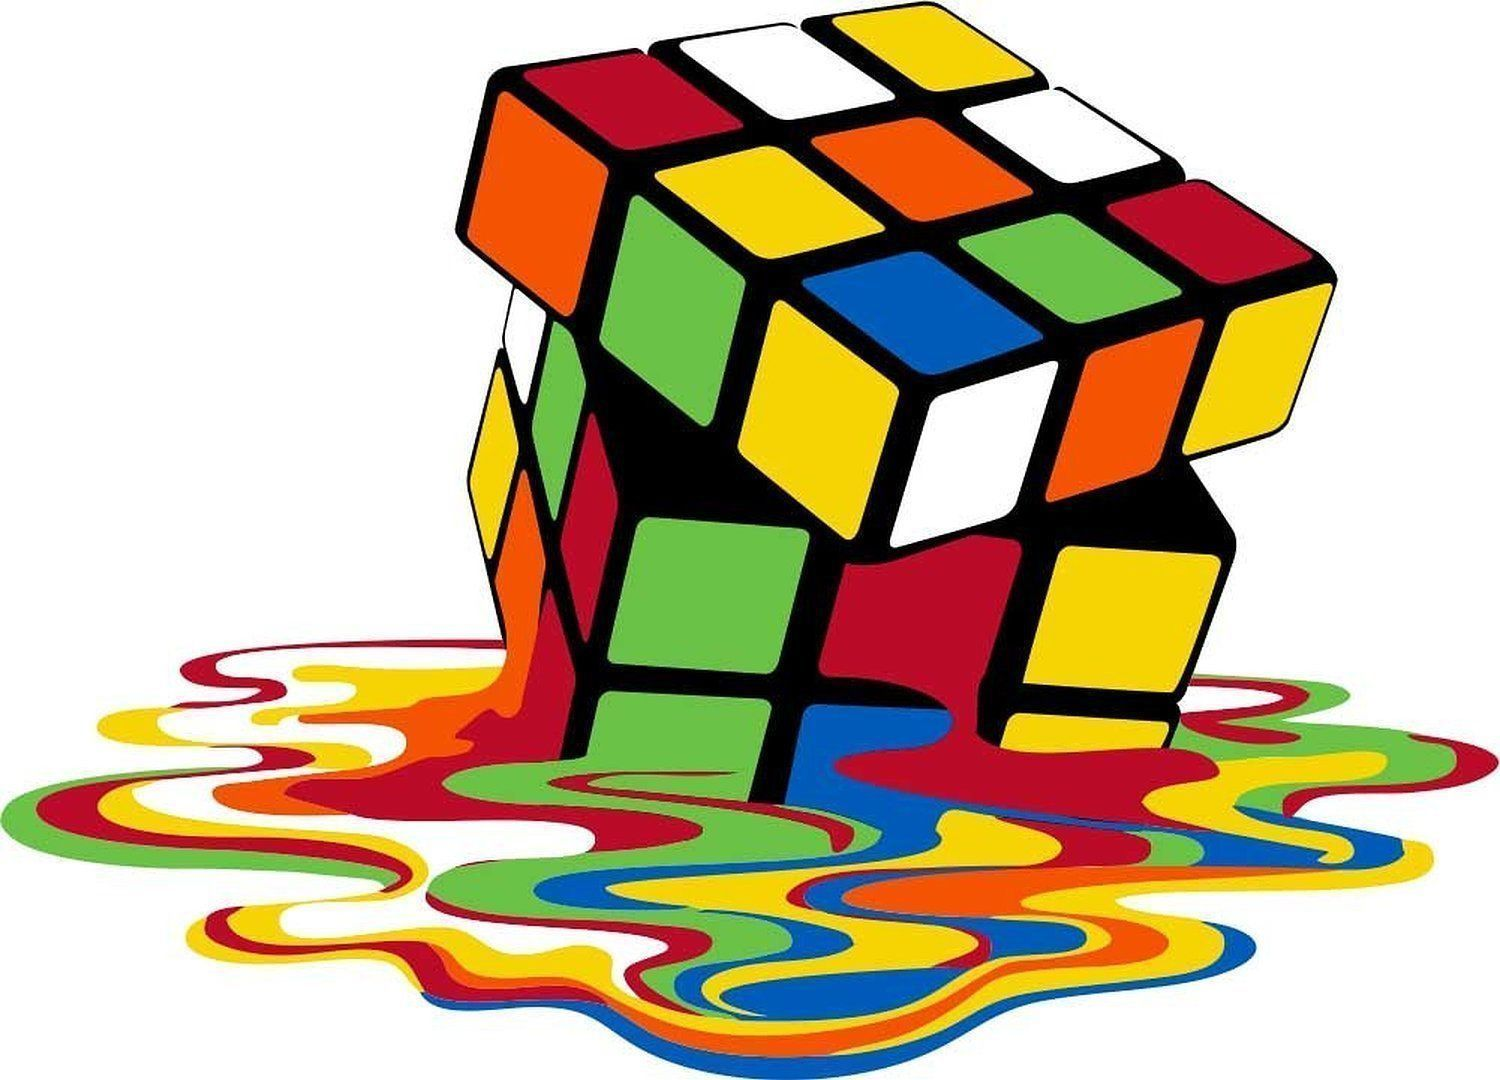 5 99 Rubiks Cube Melting Love 80 S Iron On T Shirt Pillowcase Fabric Transfer 109 Ebay Home Garden Rubiks Cube Cube Image Cube